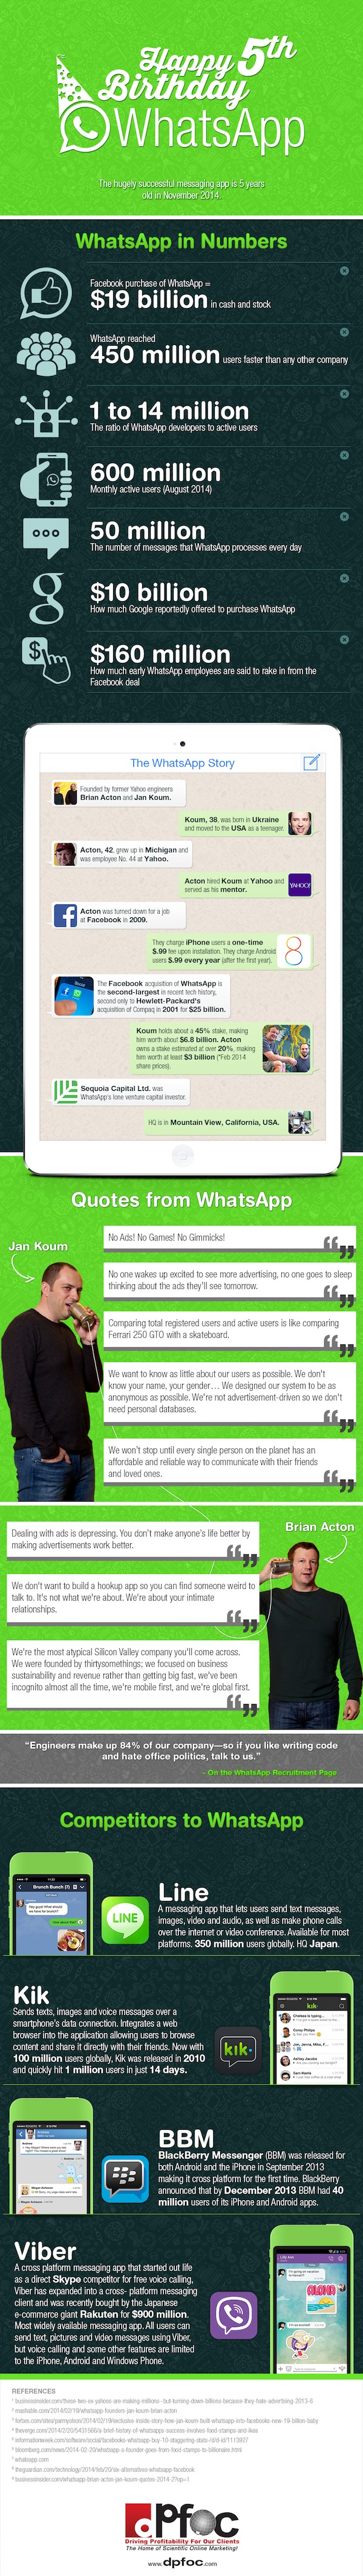 WhatsApp 5 jaar infographic